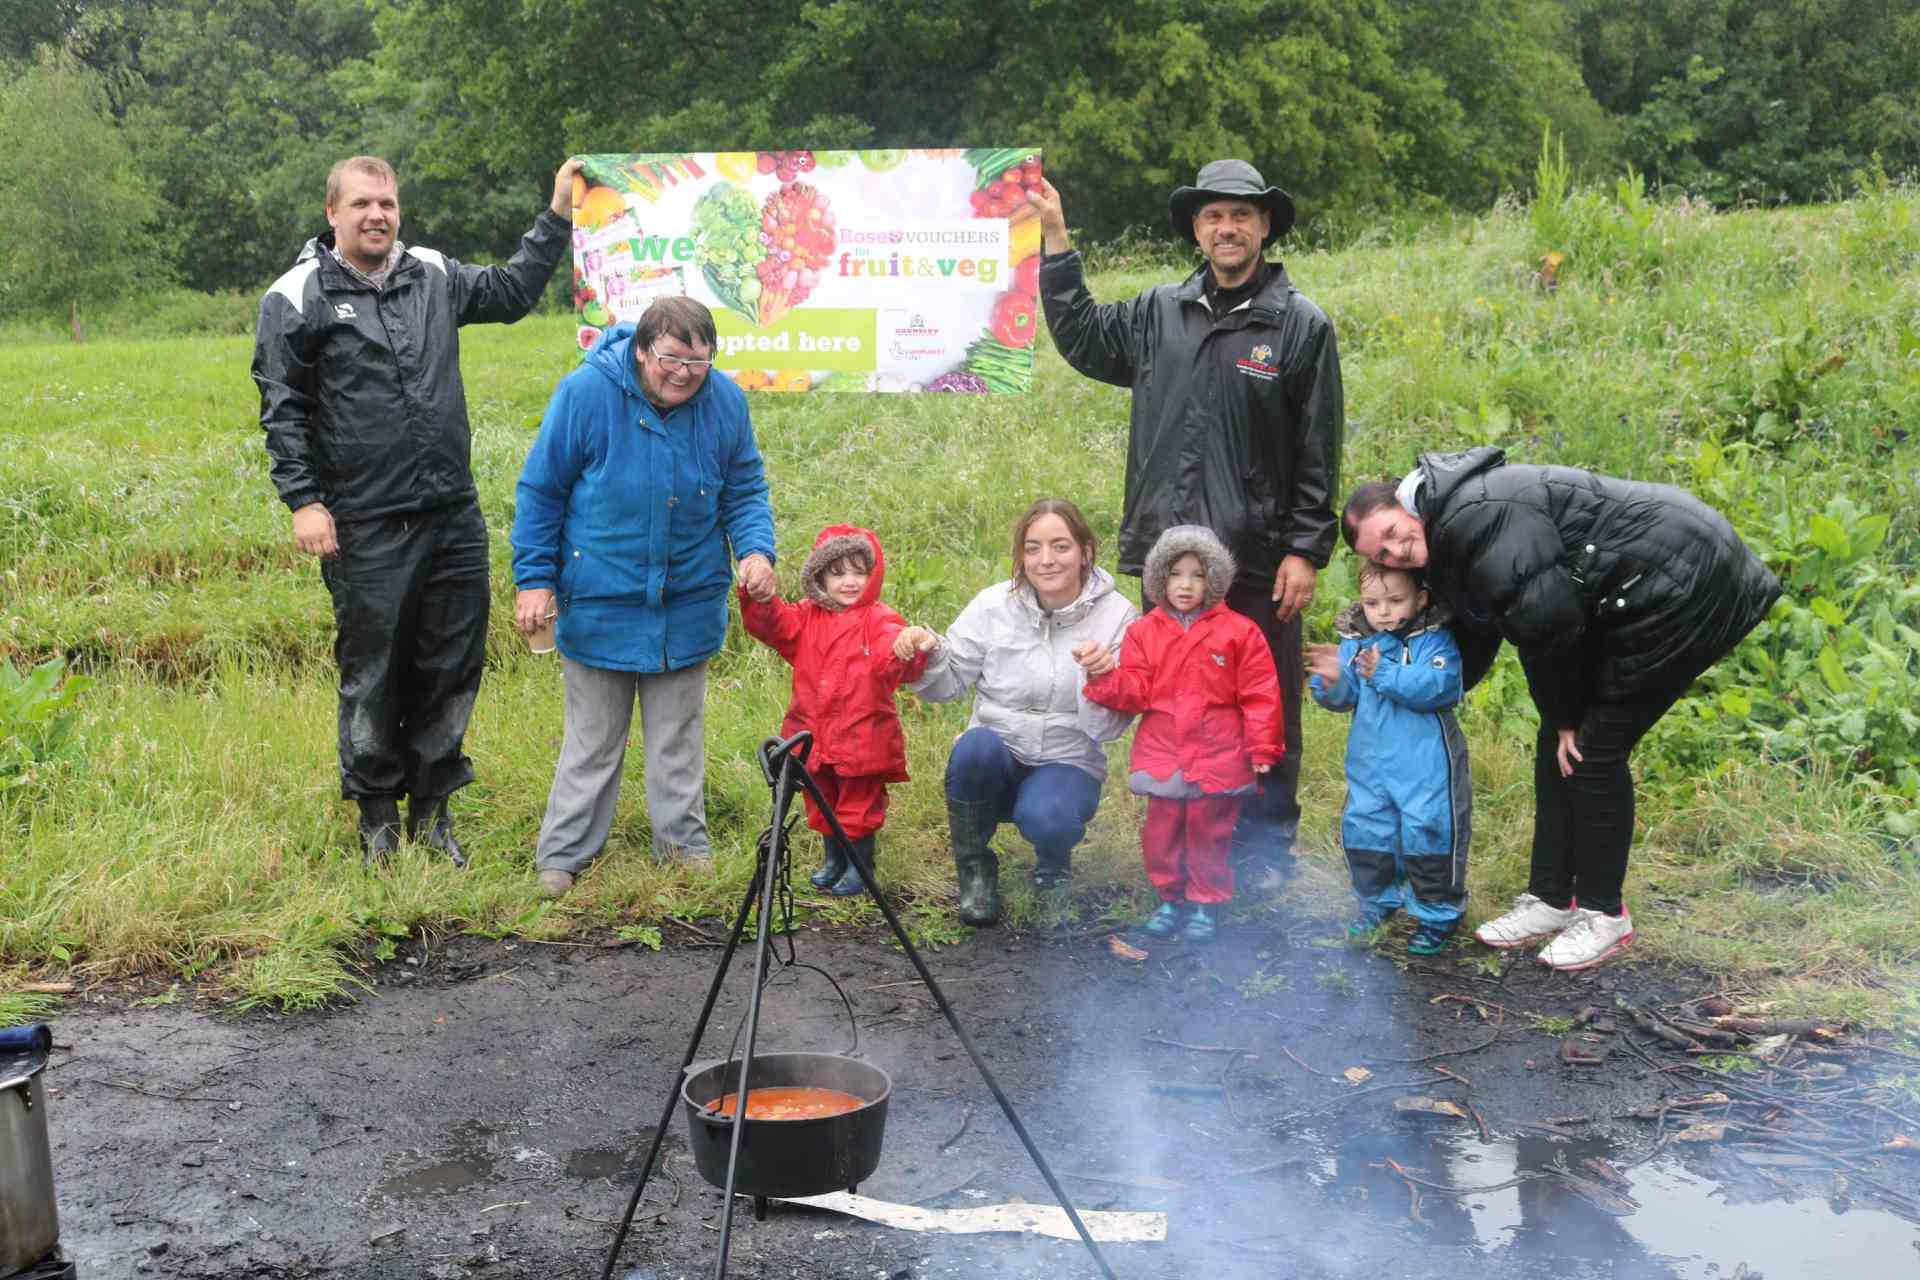 Rose voucher celebration photo - people cooking in the wild